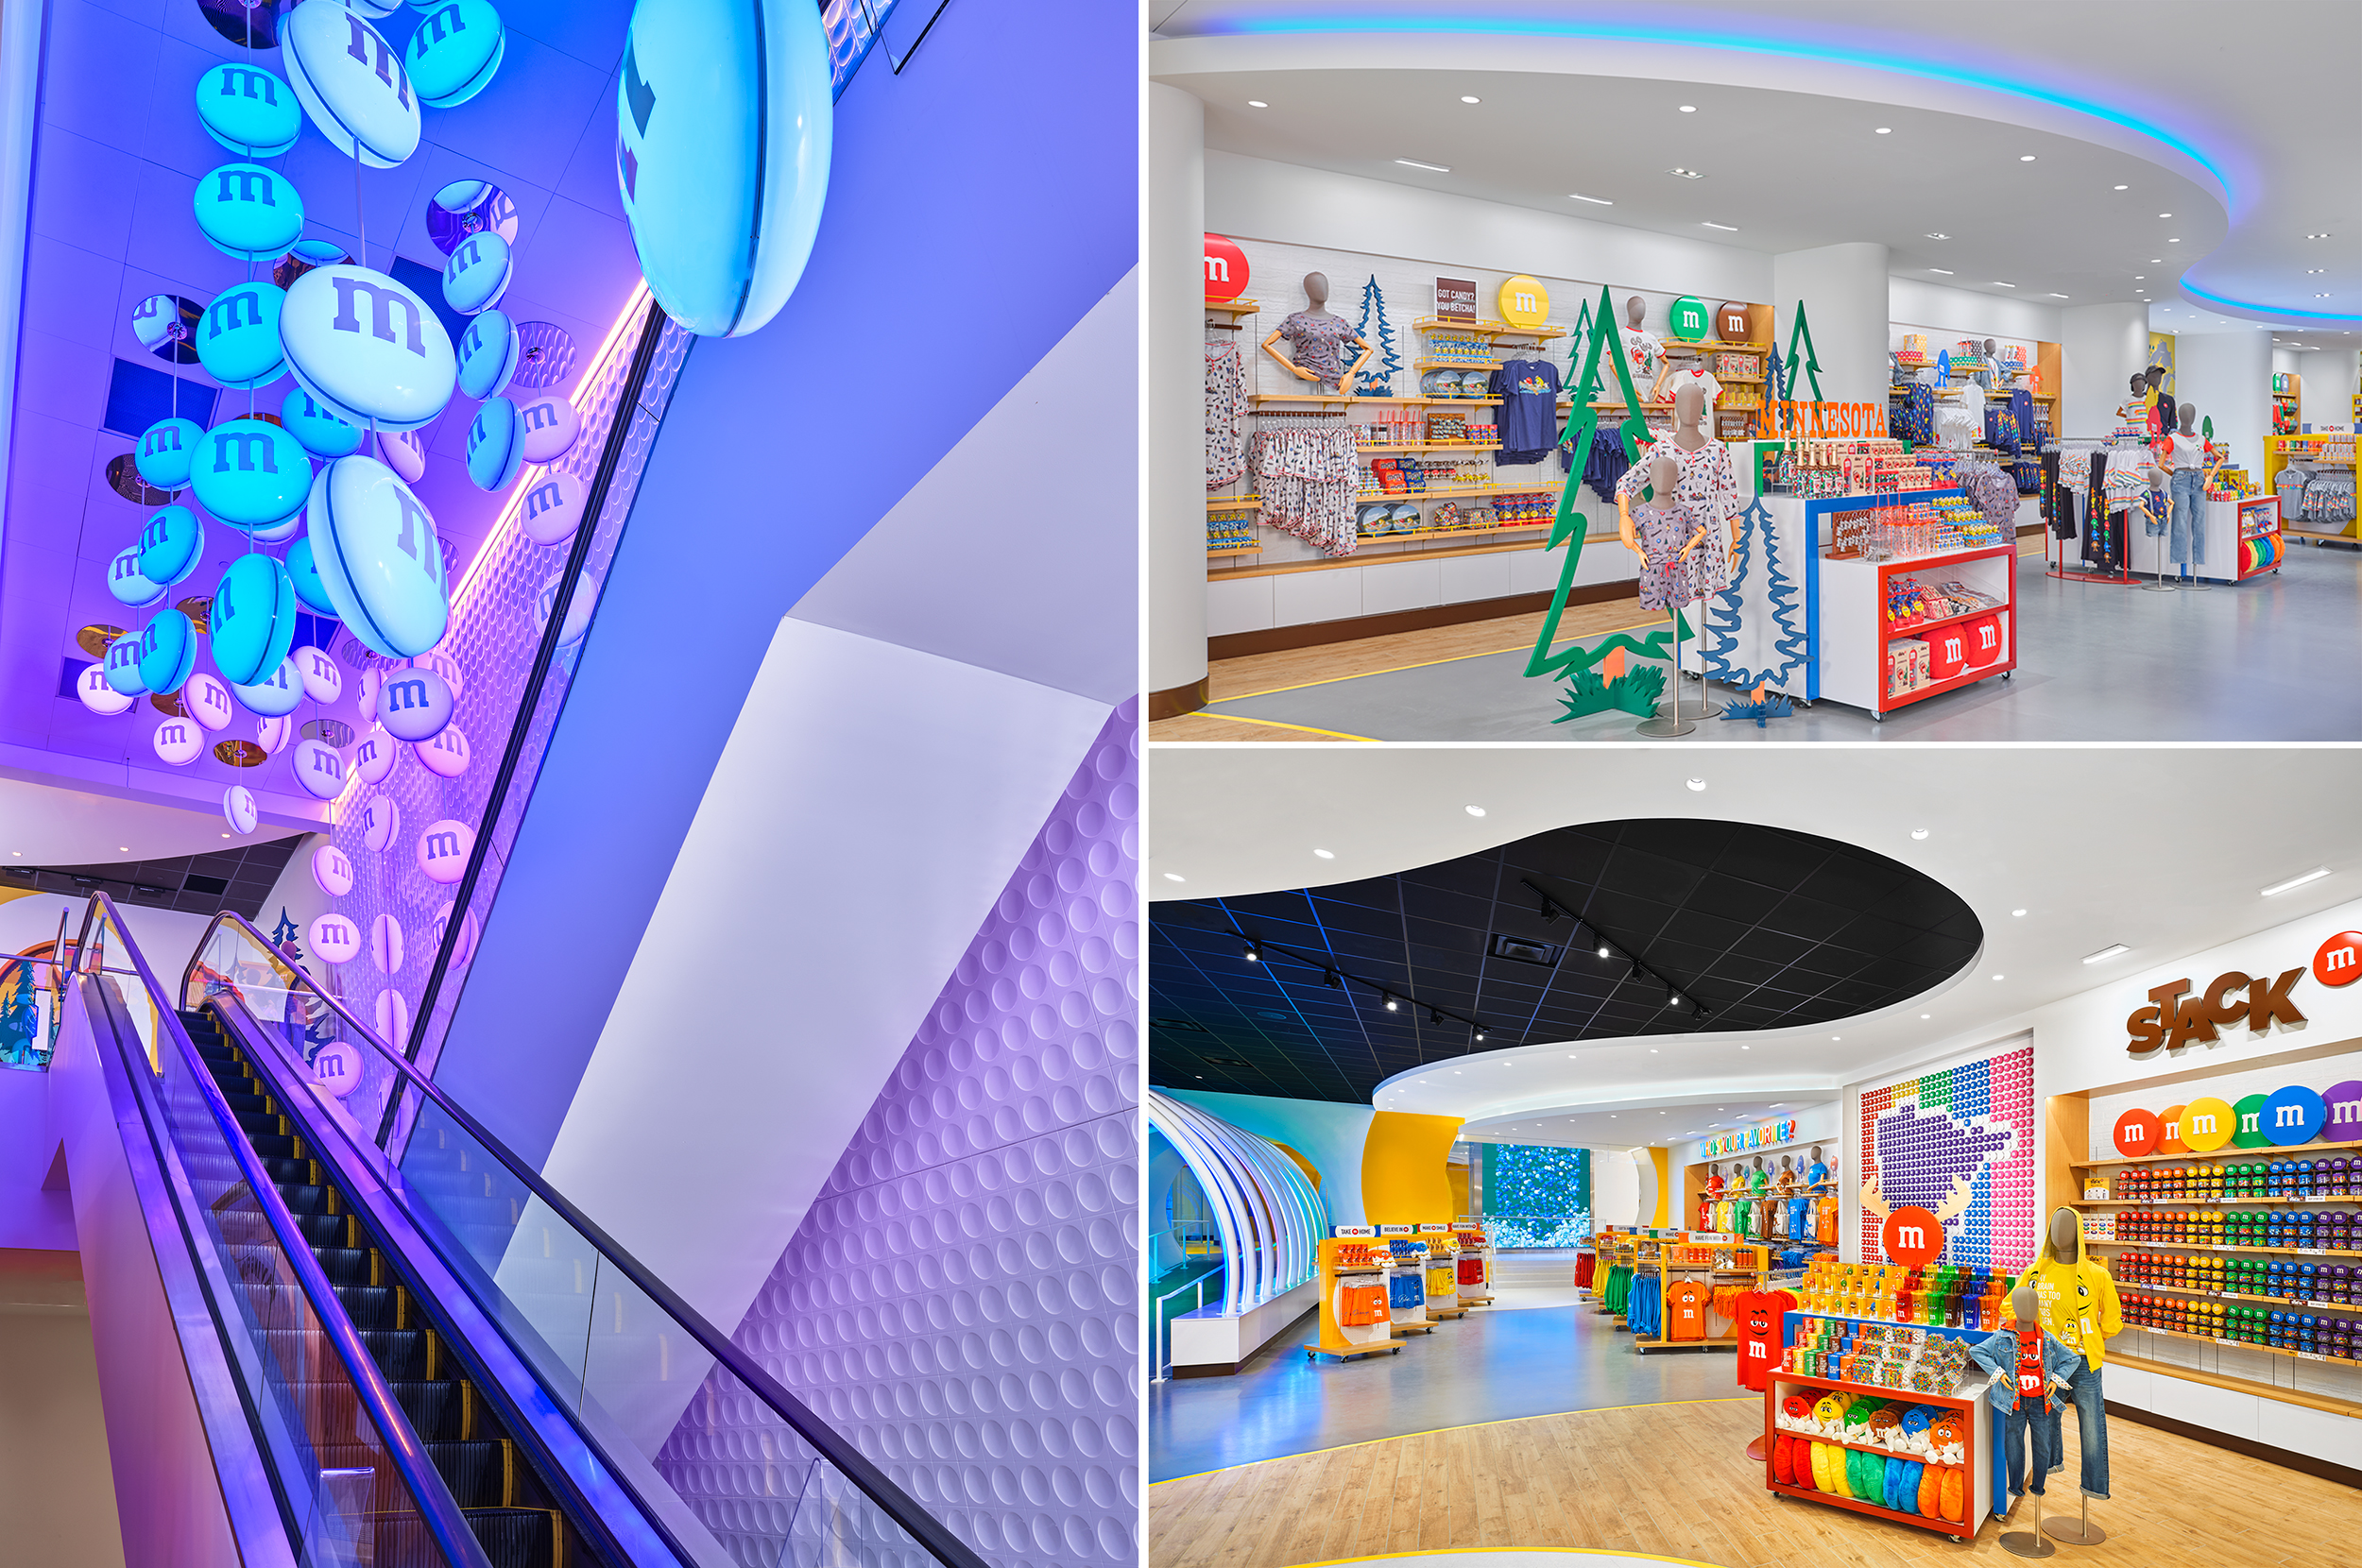 Visitors are invited to immerse themselves in the 24,000- square-foot space that captures the brand's joyful spirit.